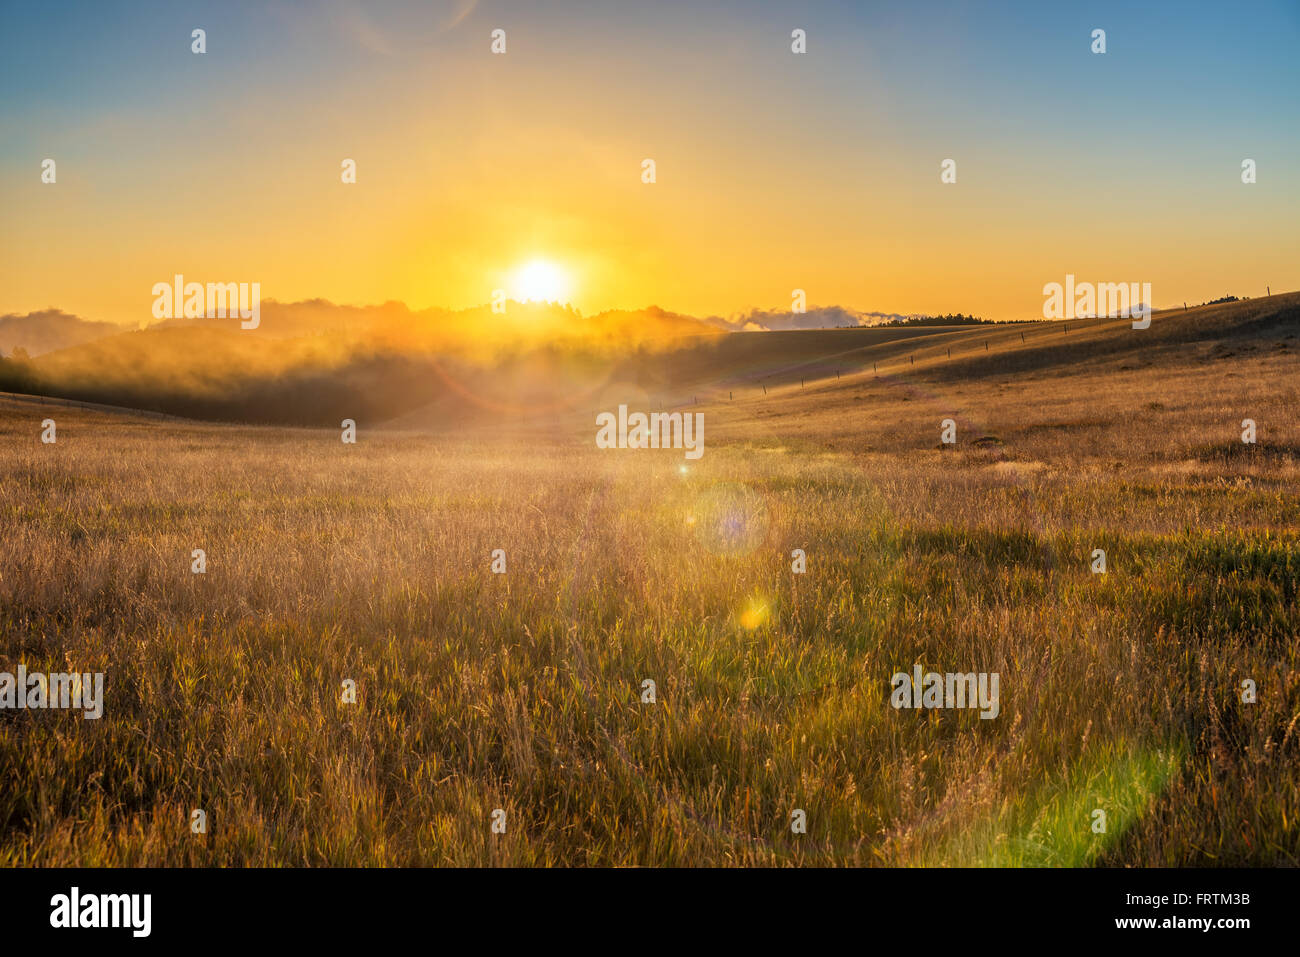 Sunrise and lens flare over a field in the Bighorn Mountain Range near Buffalo, Wyoming - Stock Image